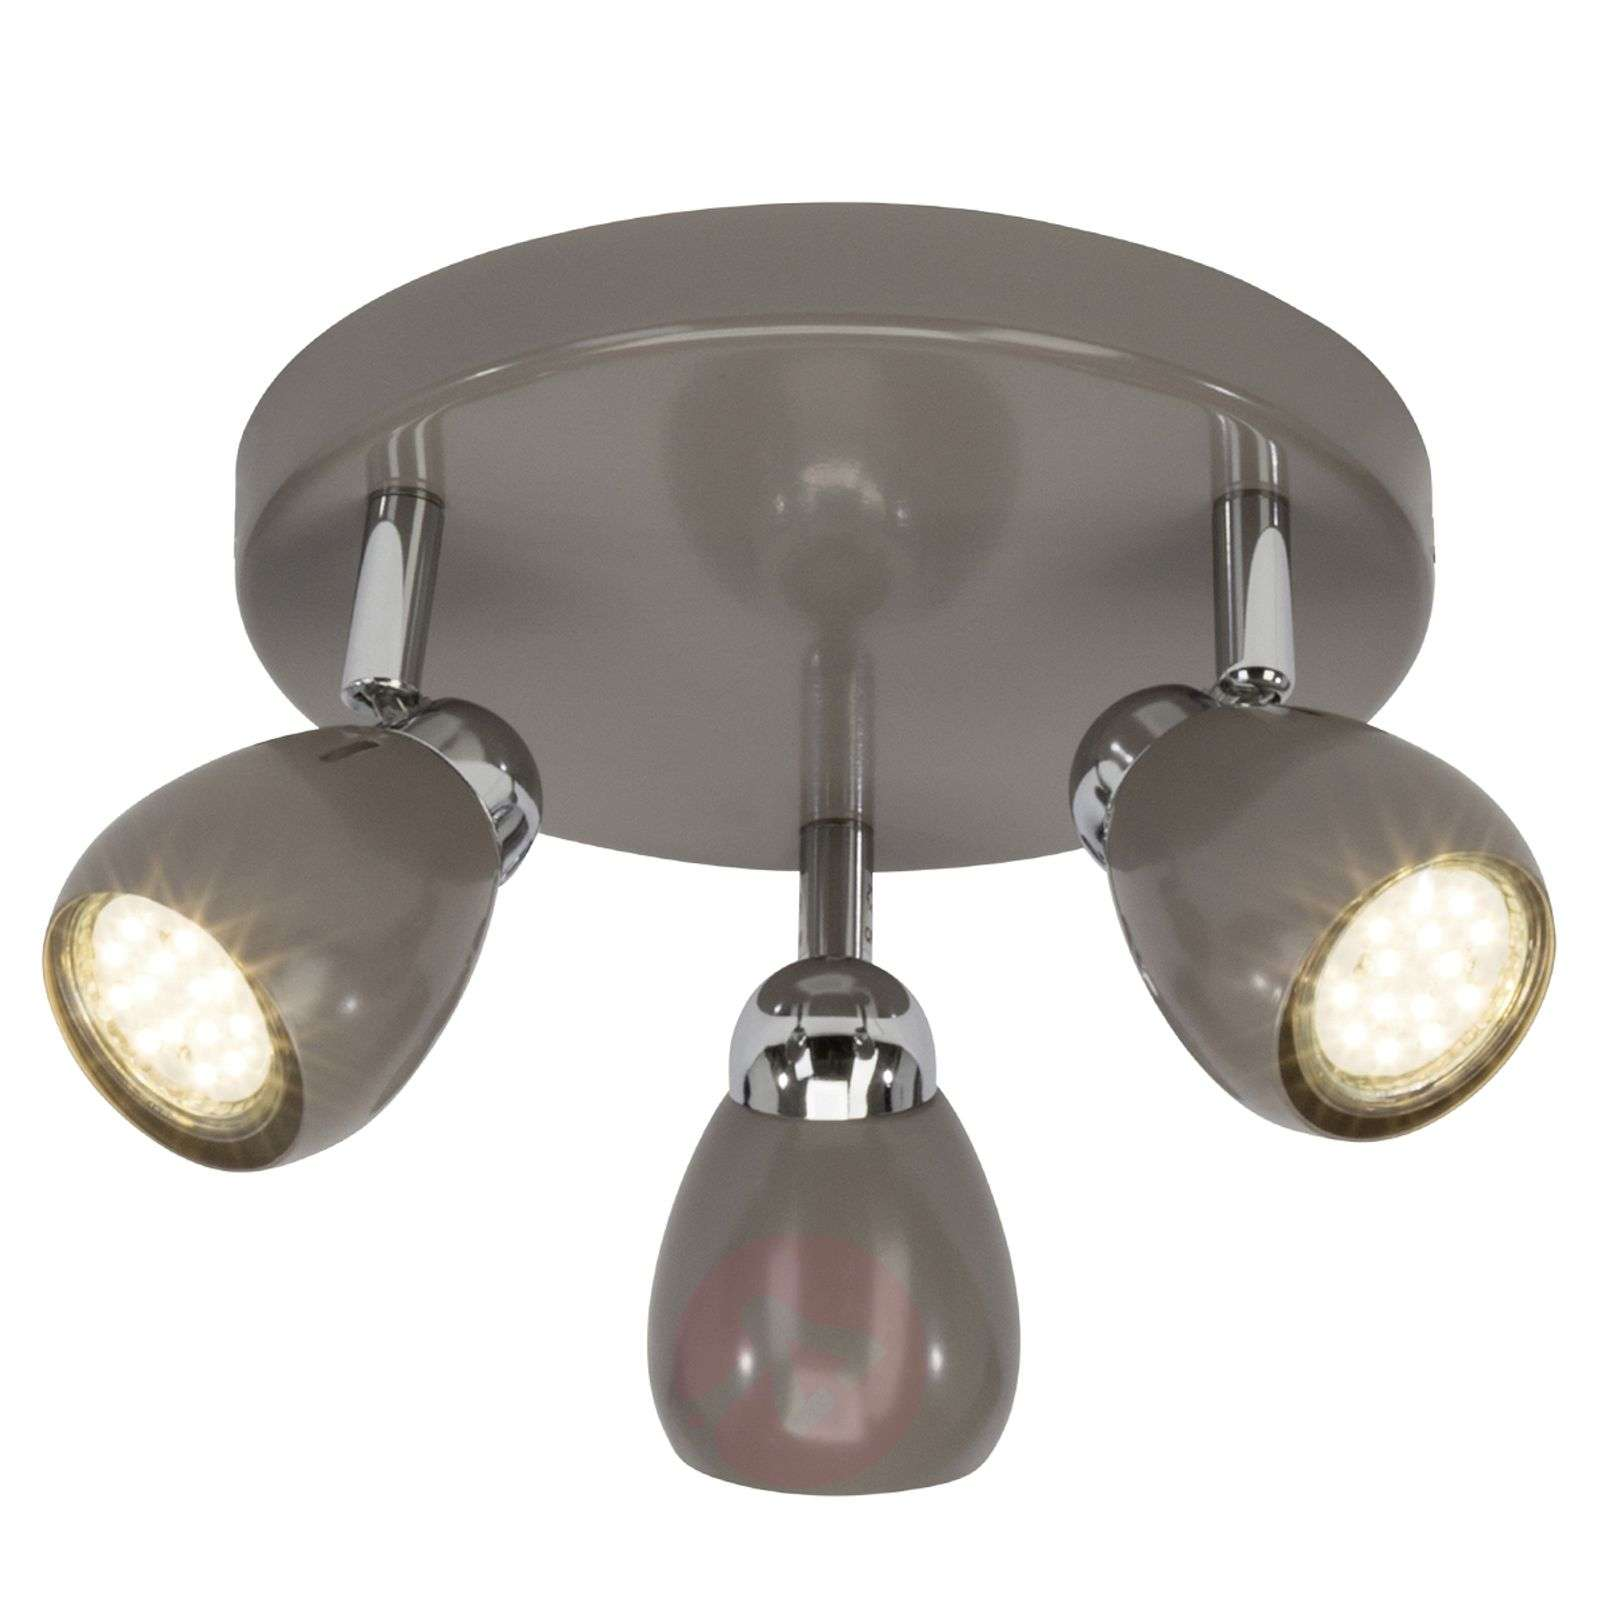 Plafondlamp Milano met drie LED spots-1509180-01